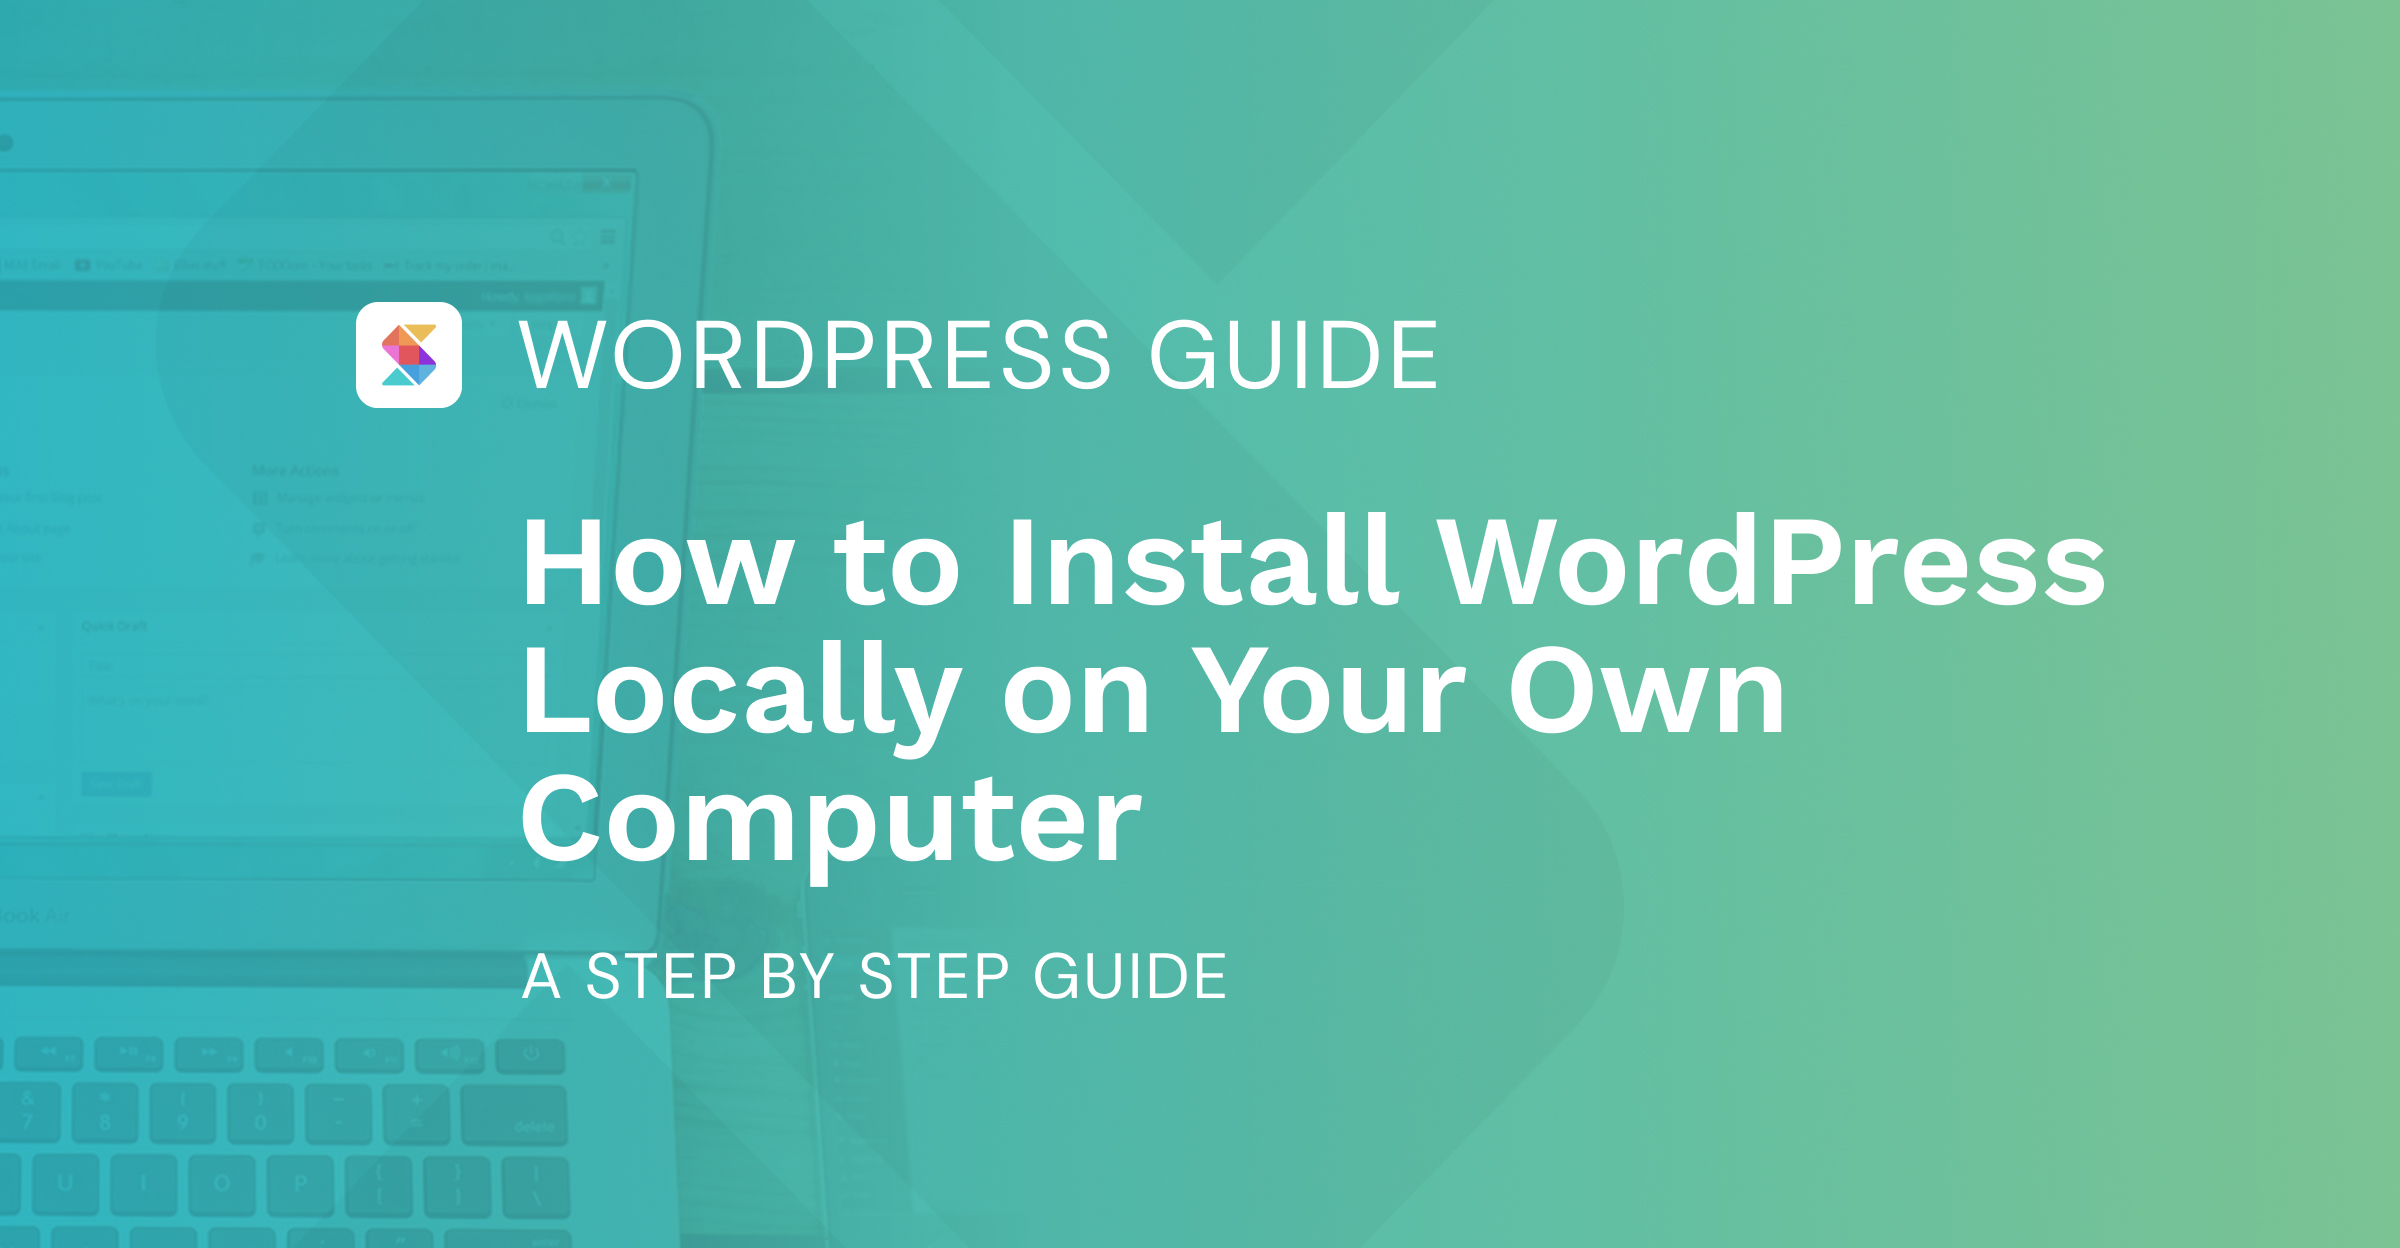 How to Install WordPress Locally on Your Own Computer (A Step by Step Guide)